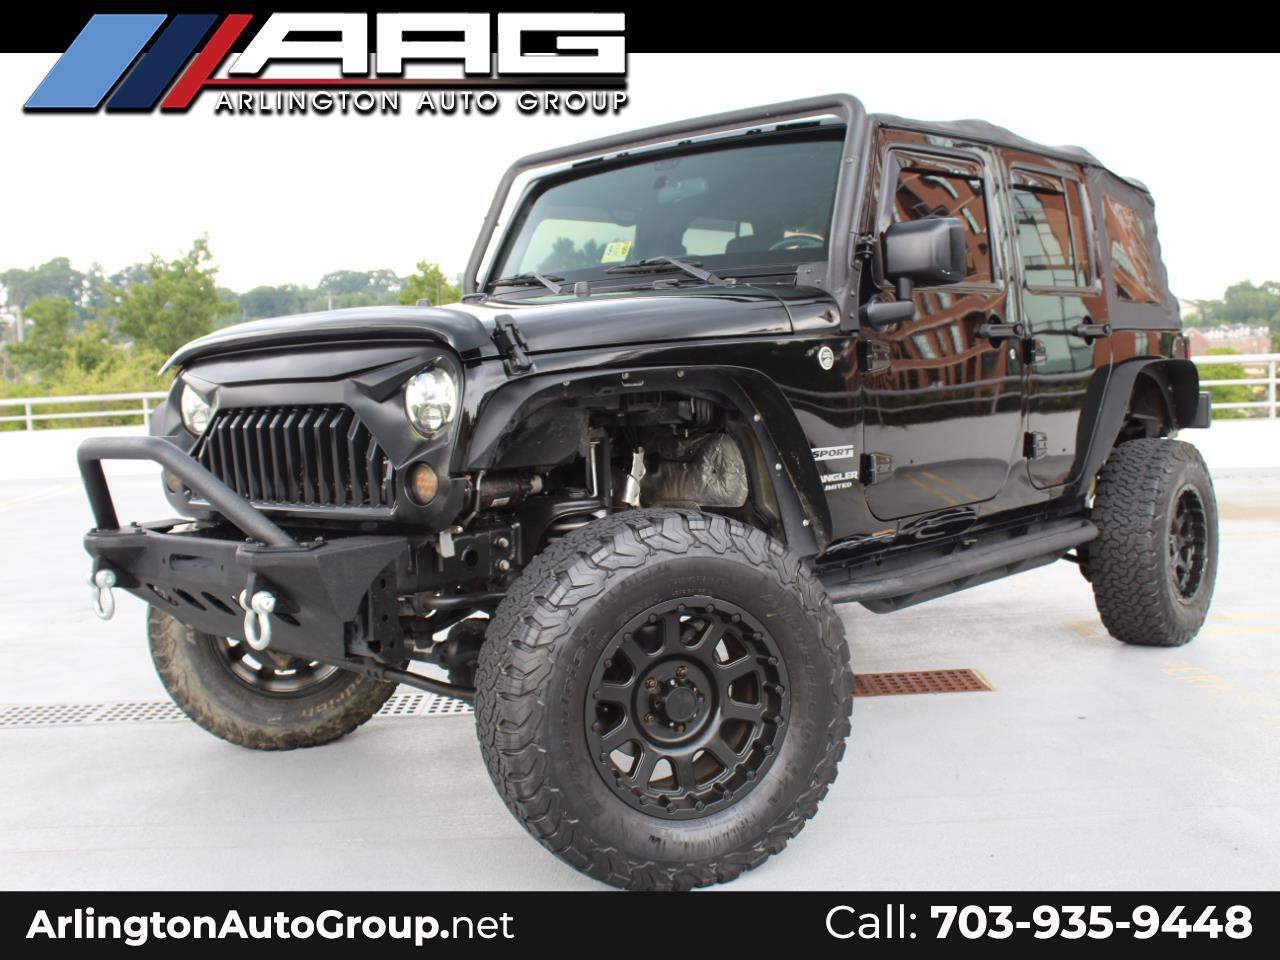 2015 Jeep Wrangler JK Unlimited Altitude 4x4